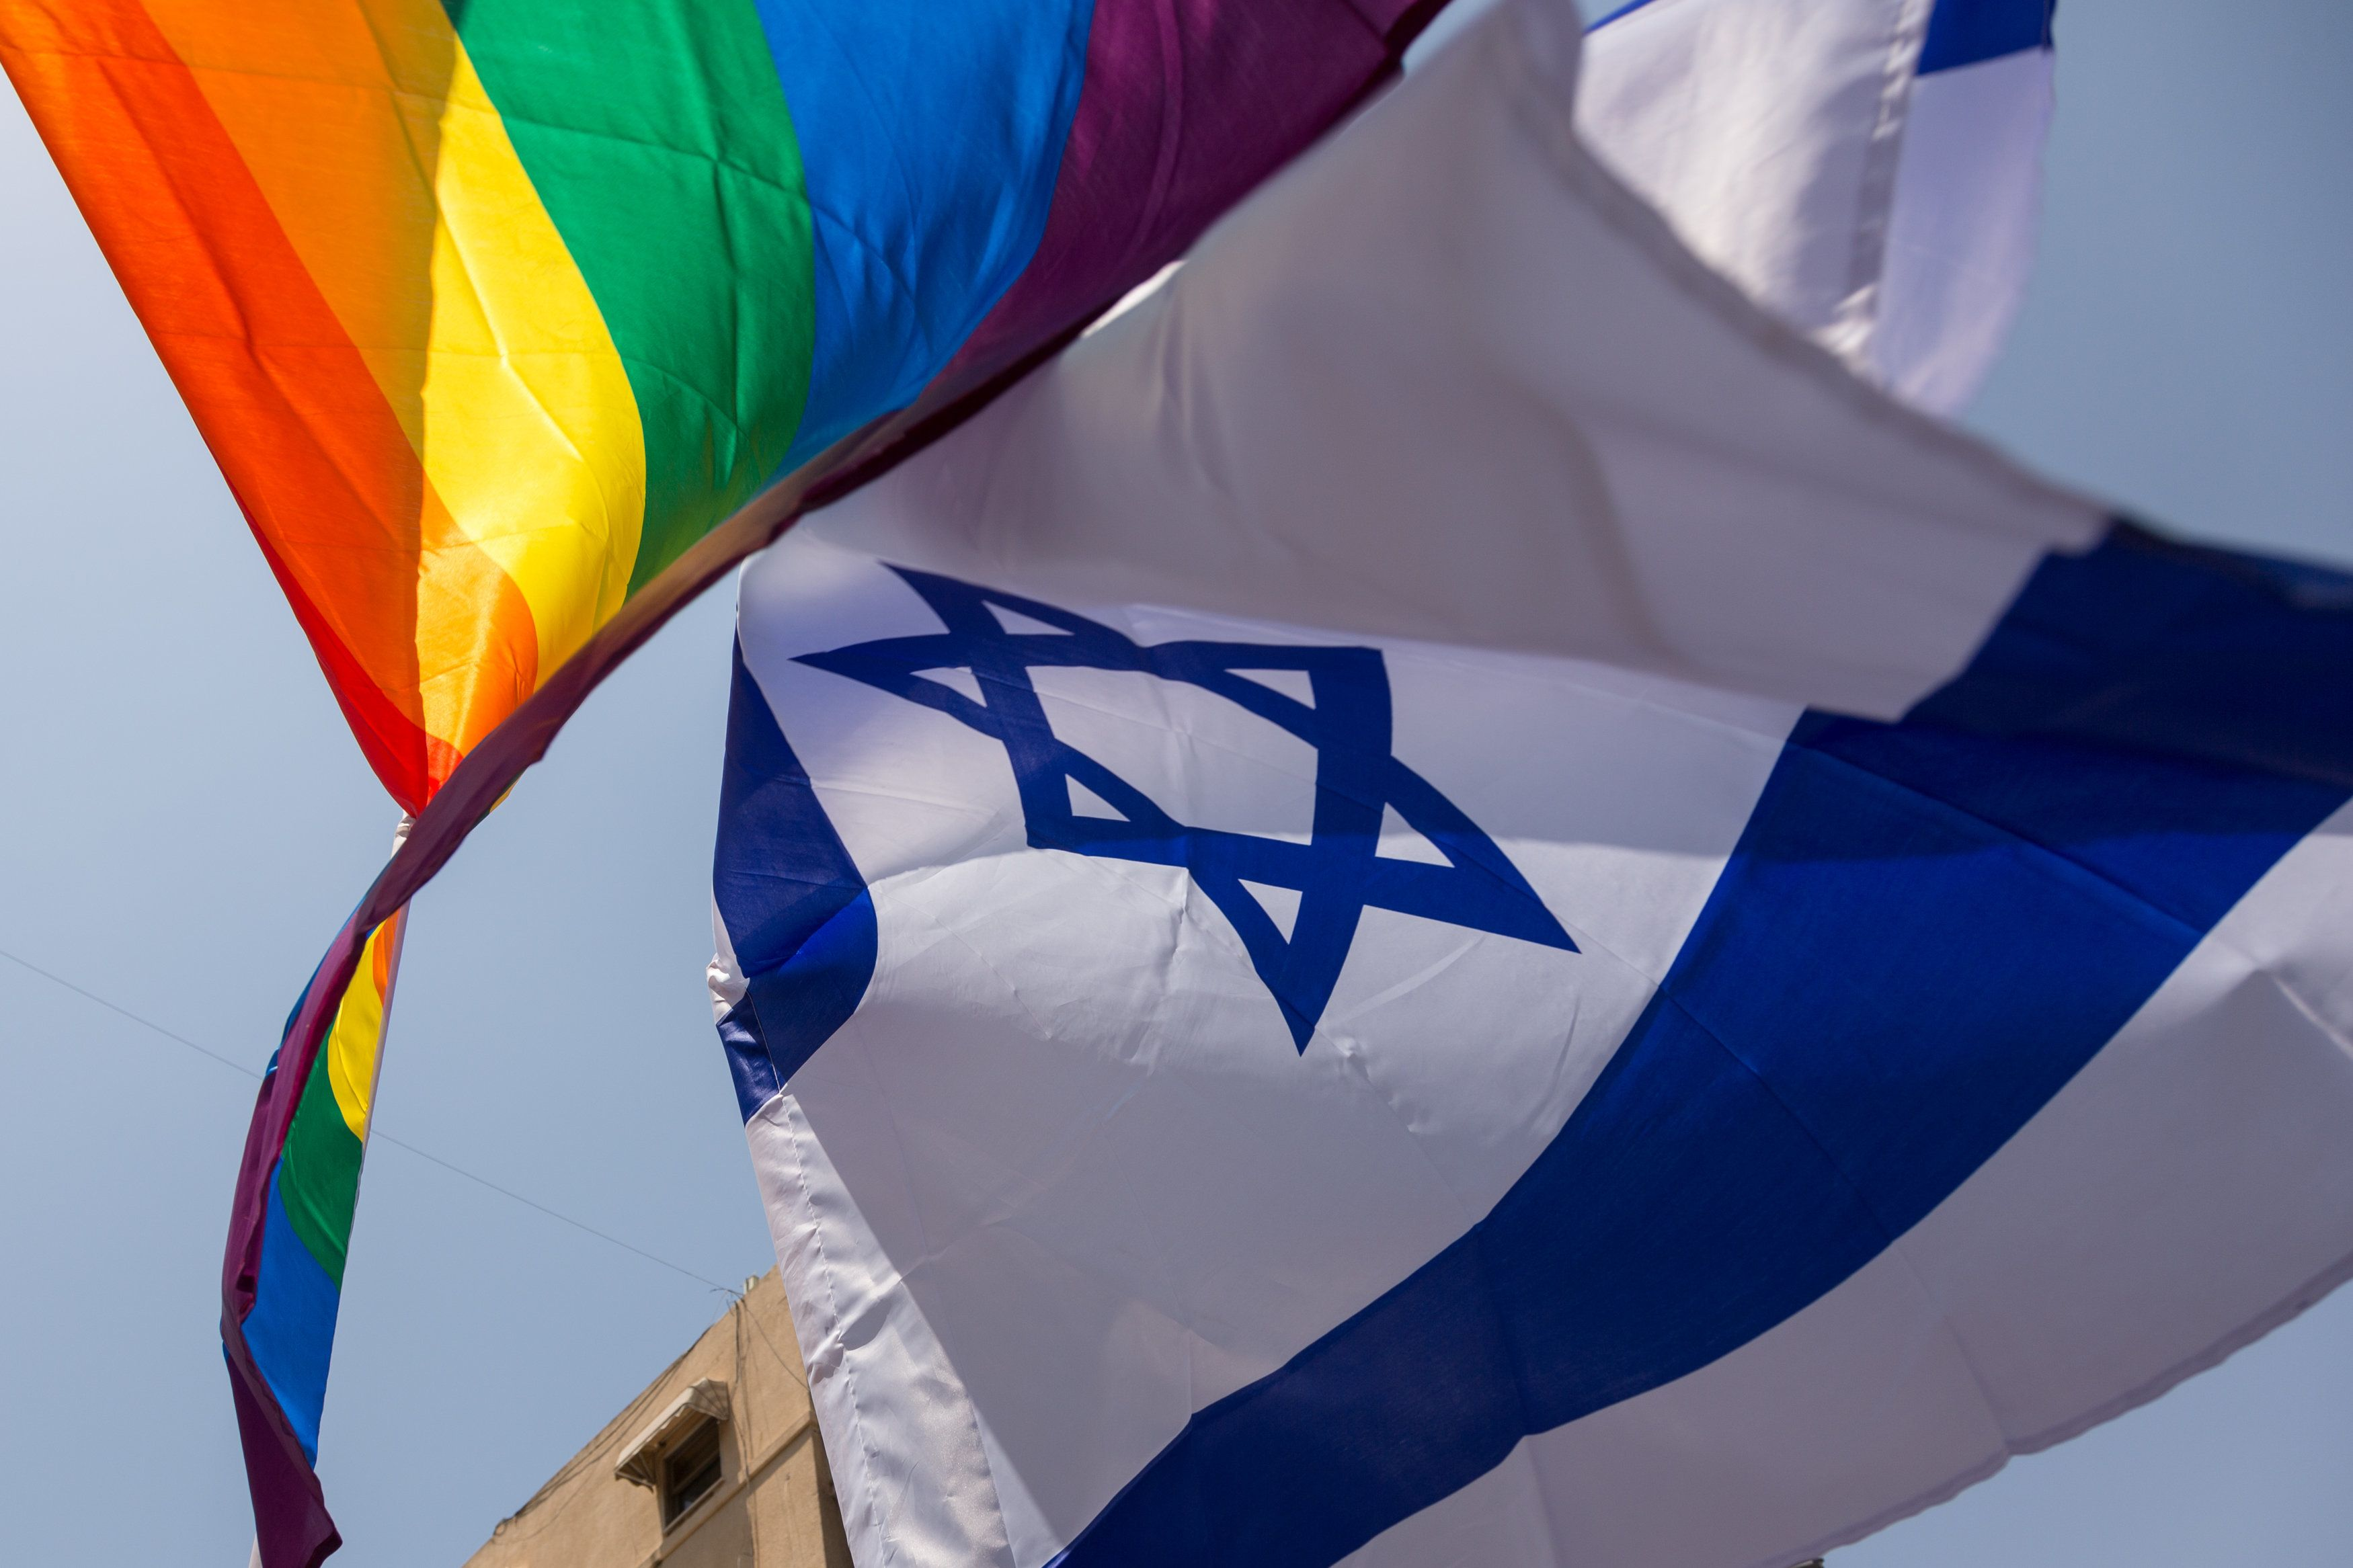 Israeli and LGBT flags during 20th Pride Parade in Tel Aviv, Israel on June 8, 2018. The beach boulevard march attracted 250 thousand people (Photo by Dominika Zarzycka/NurPhoto via Getty Images)